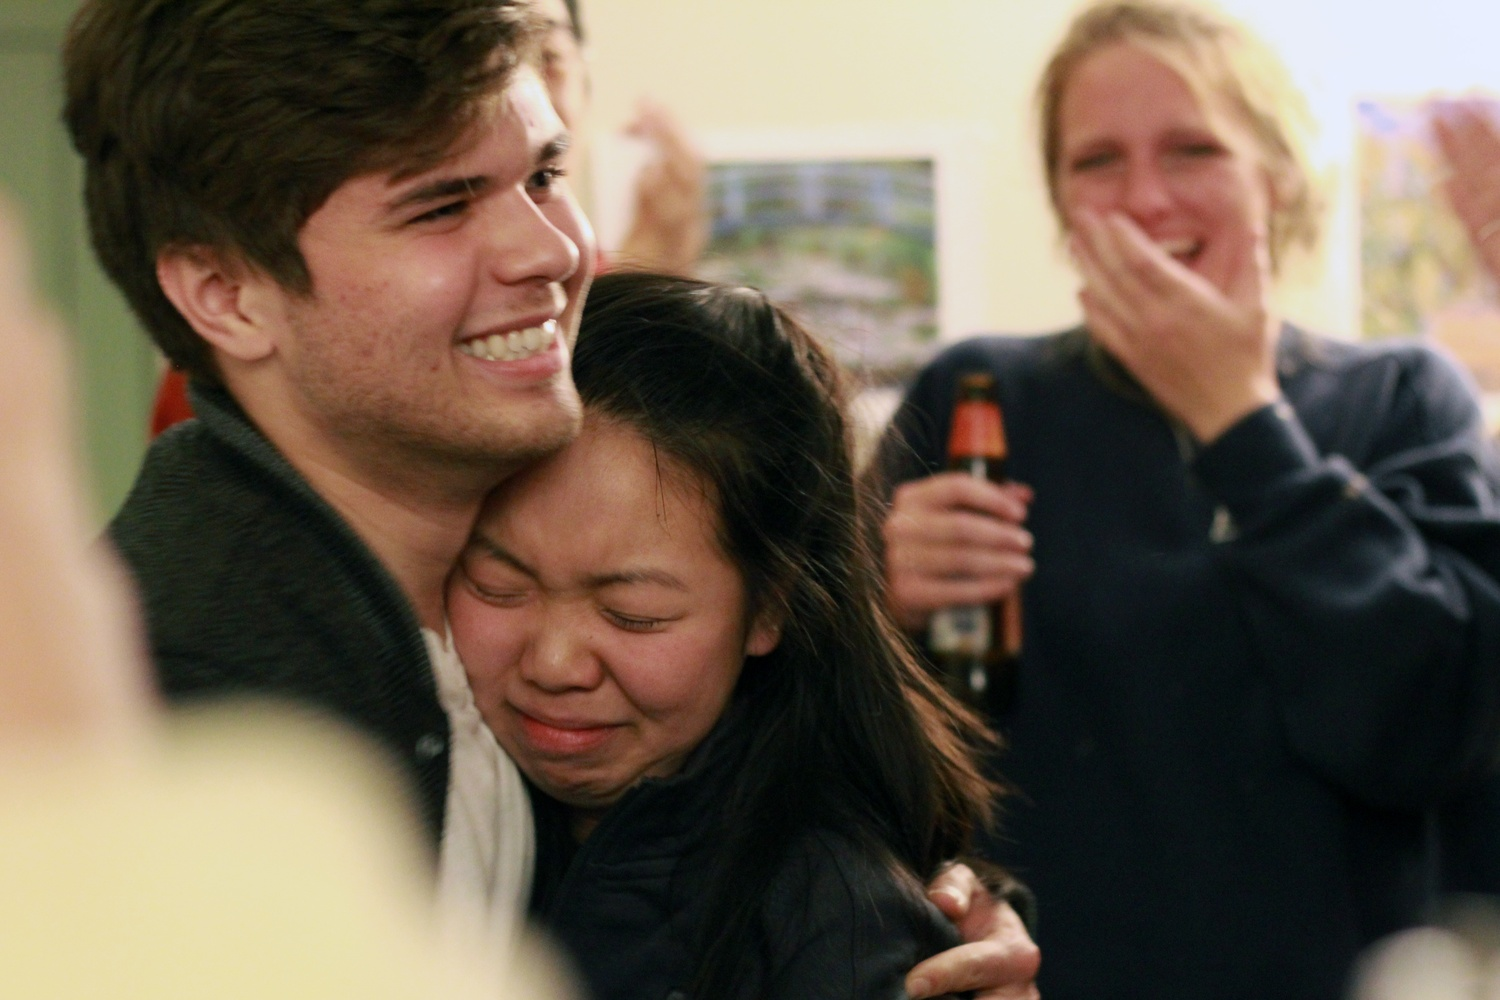 Catherine L. Zhang '19 hugs her vice president, Nicholas D. Boucher '19 shortly after they receive news of their victory in November 2017.